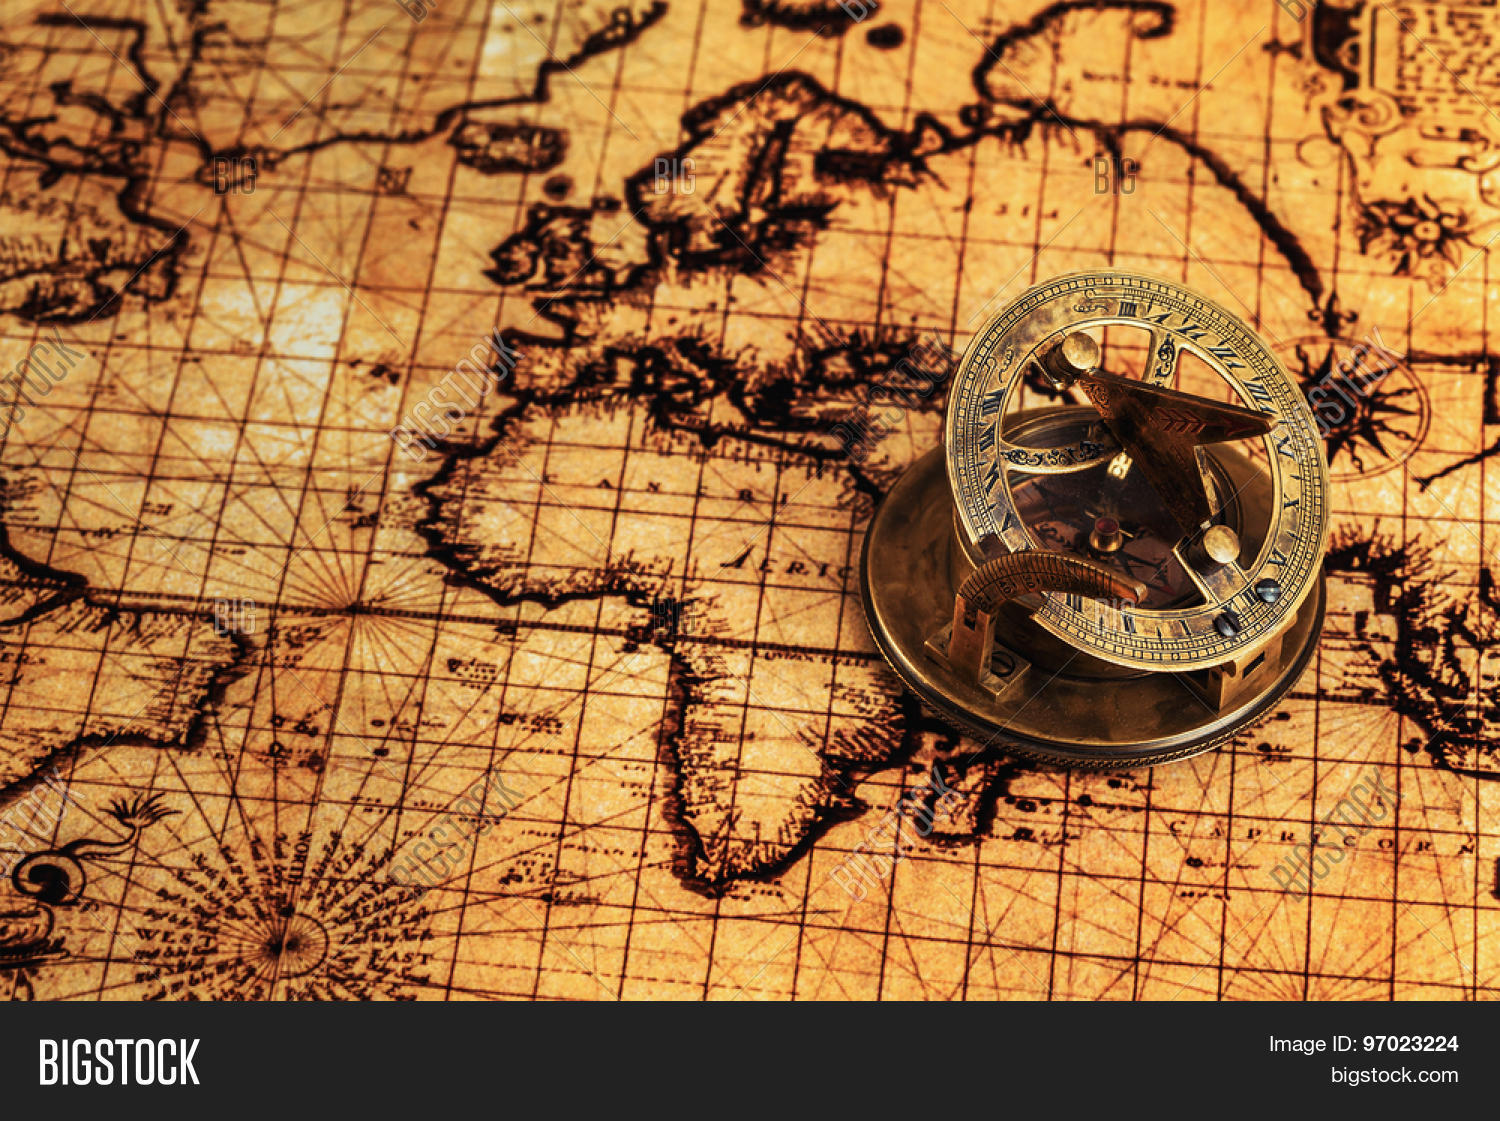 Travel geography image photo free trial bigstock travel geography navigation concept background old vintage retro compass with sundial on ancient world map gumiabroncs Gallery